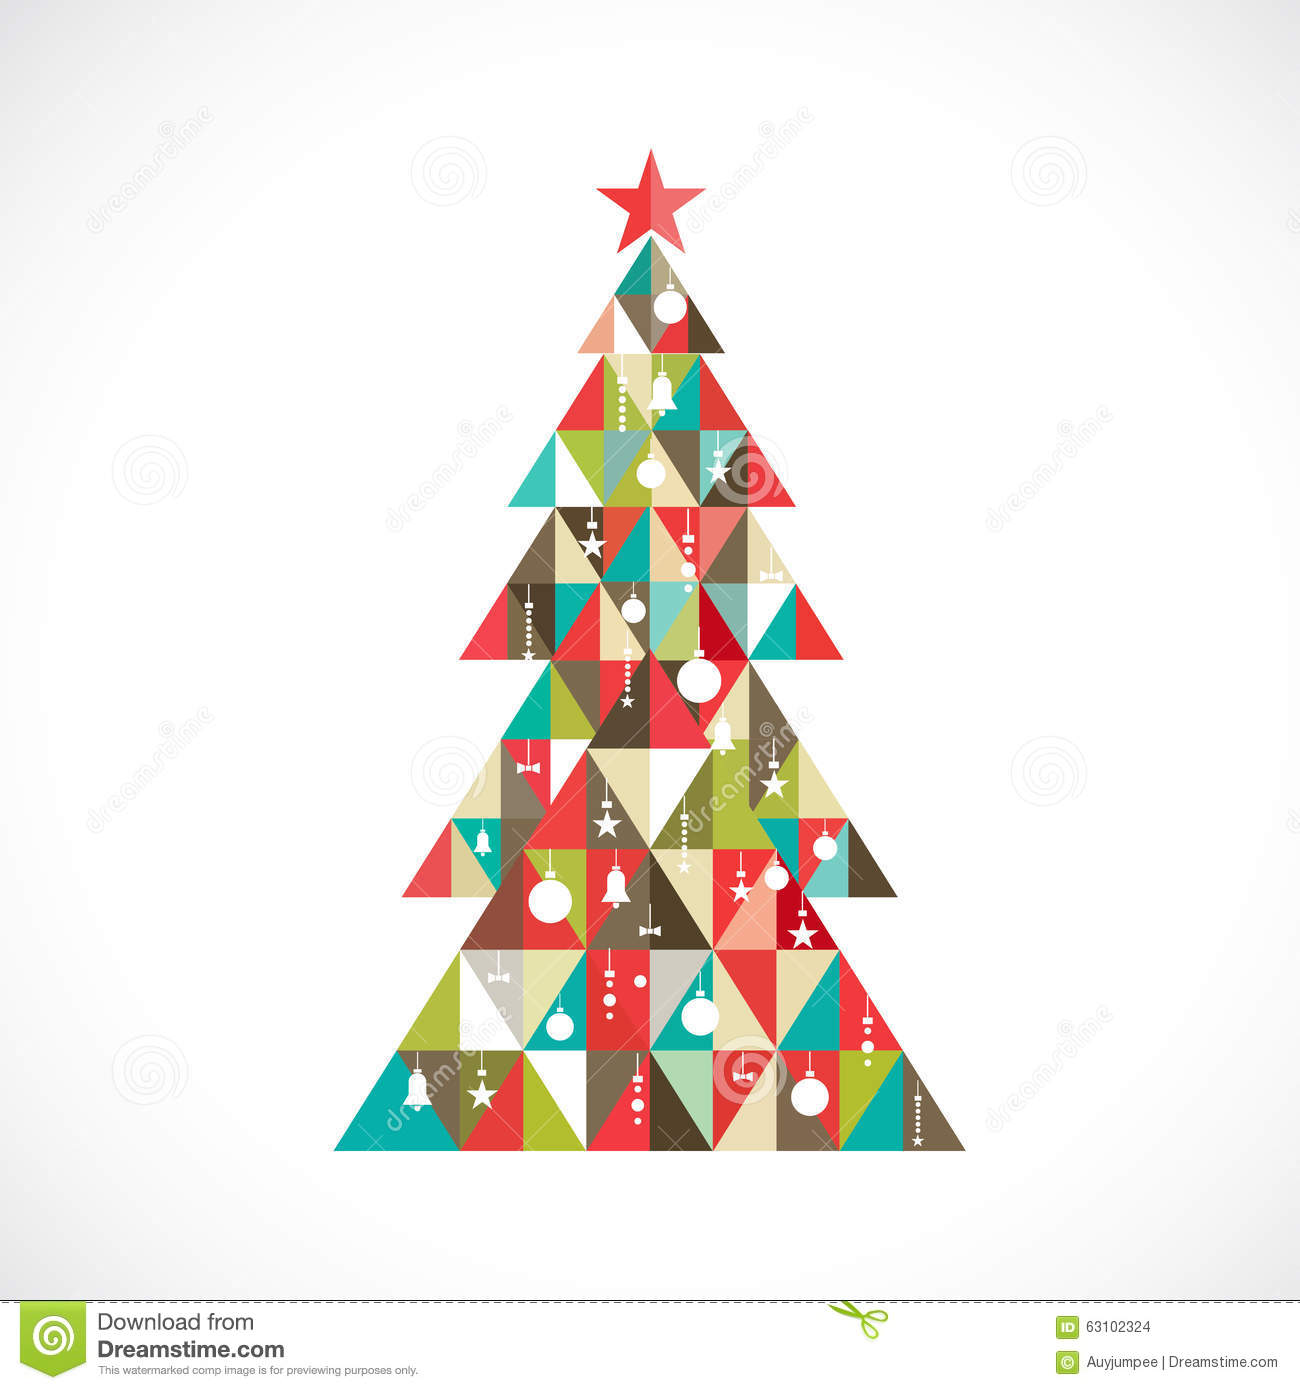 Christmas tree with geometric graphic decorate vector